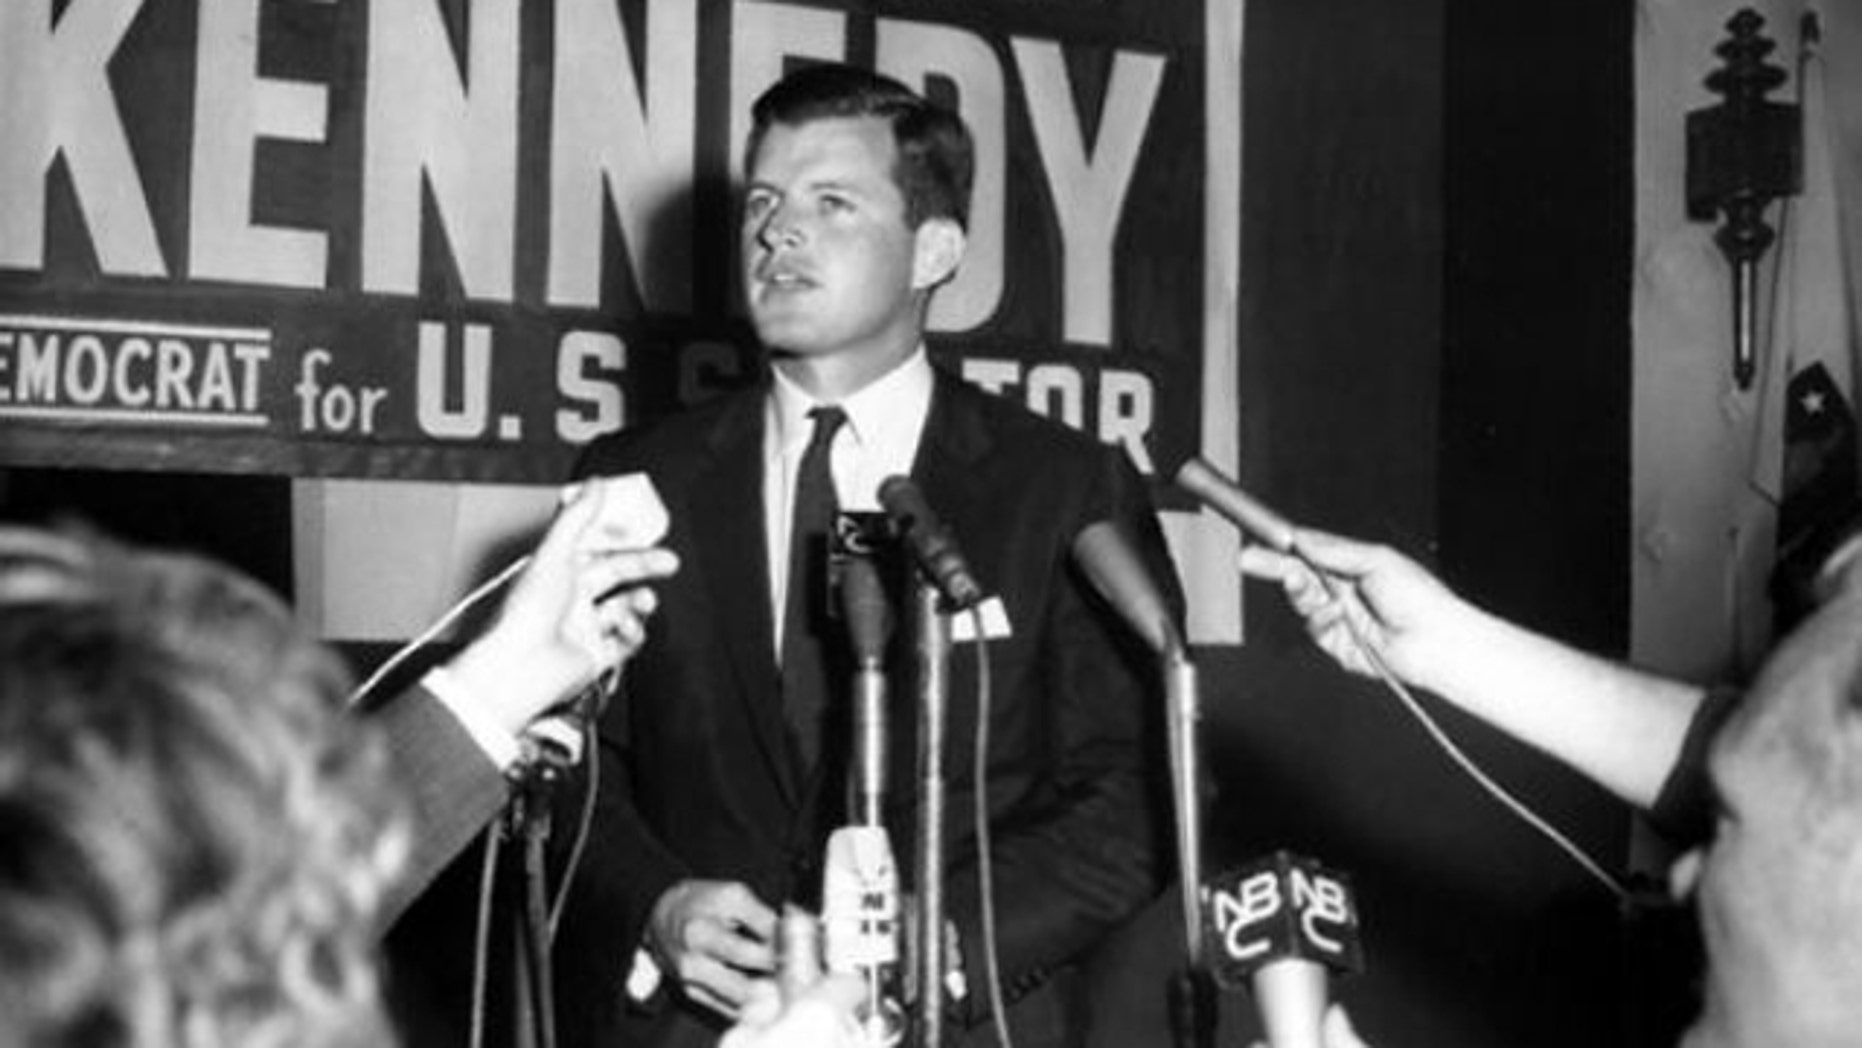 The late Sen. Ted Kennedy is shown here running for U.S. Senate in 1962.